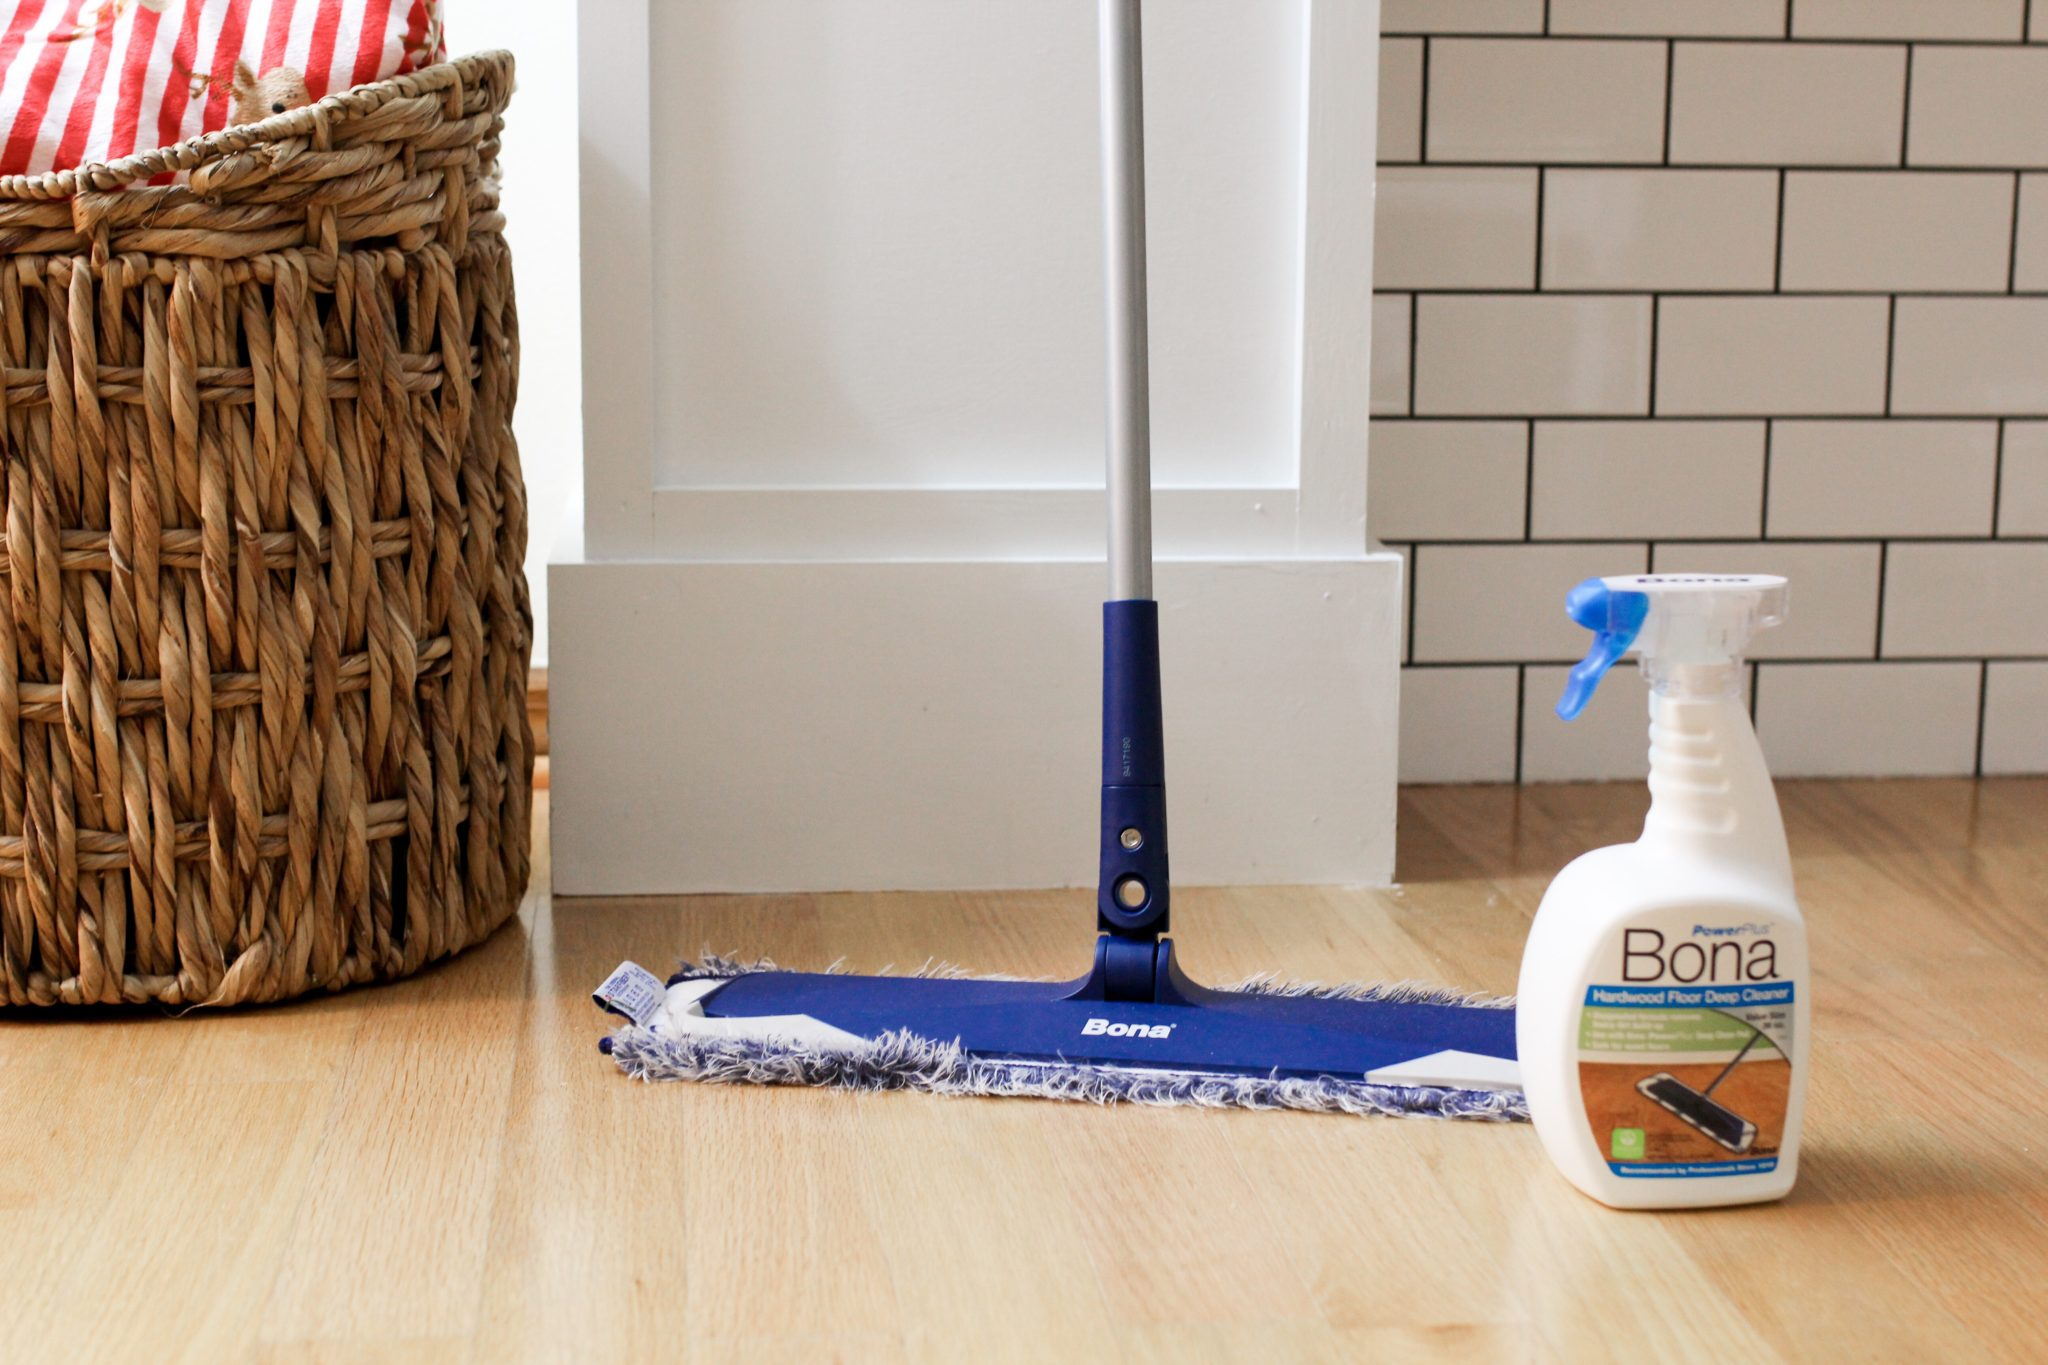 #quickcleaning how to clean house fast and efficiently, how to clean house fast list, how to clean your house in 2 hours, house cleaning secrets, how to clean house like a professional, how to clean house fast and easy, how can i clean my house fast?, how to clean a house professionally